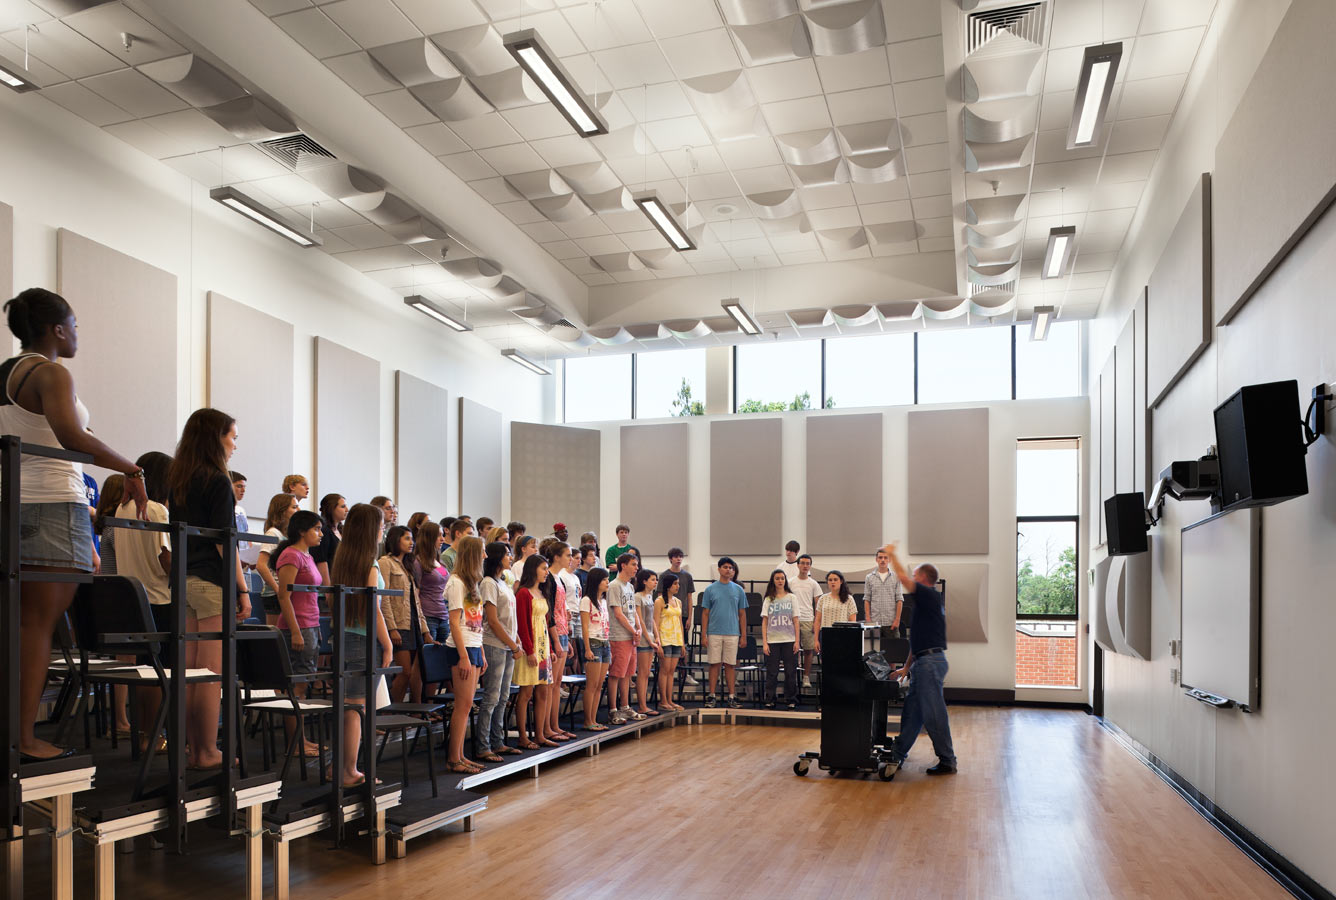 <p>On the same level as the Meeting Room, the choral practice room makes use of carefully specified acoustic features and sound-proofing. <br><small>&copy; Michael Moran/OTTO</small> </p>